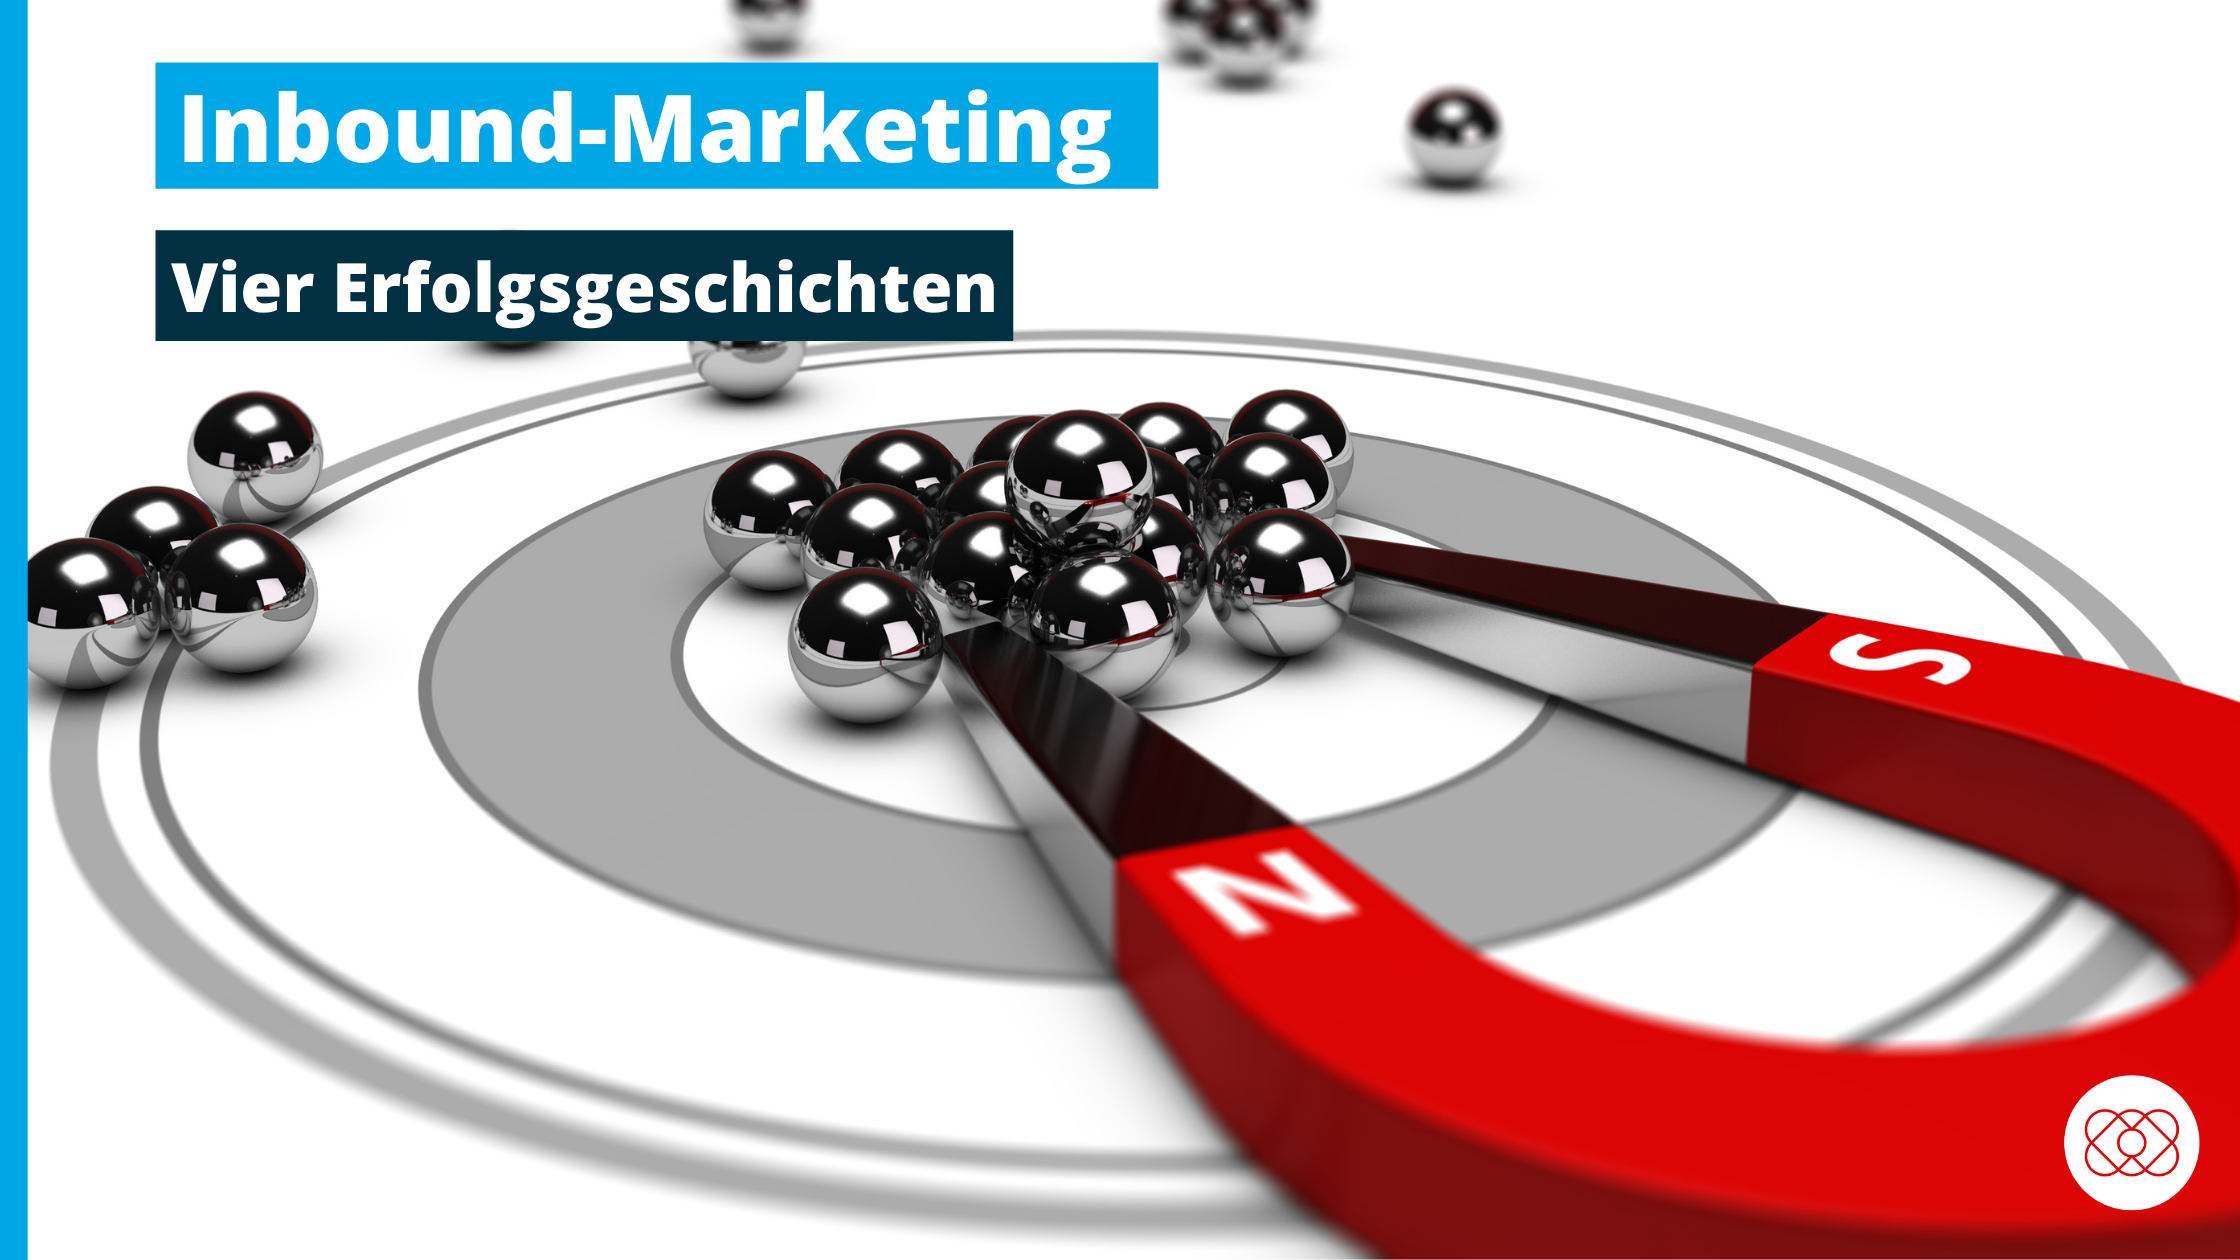 Inbound Marketing Beispiele